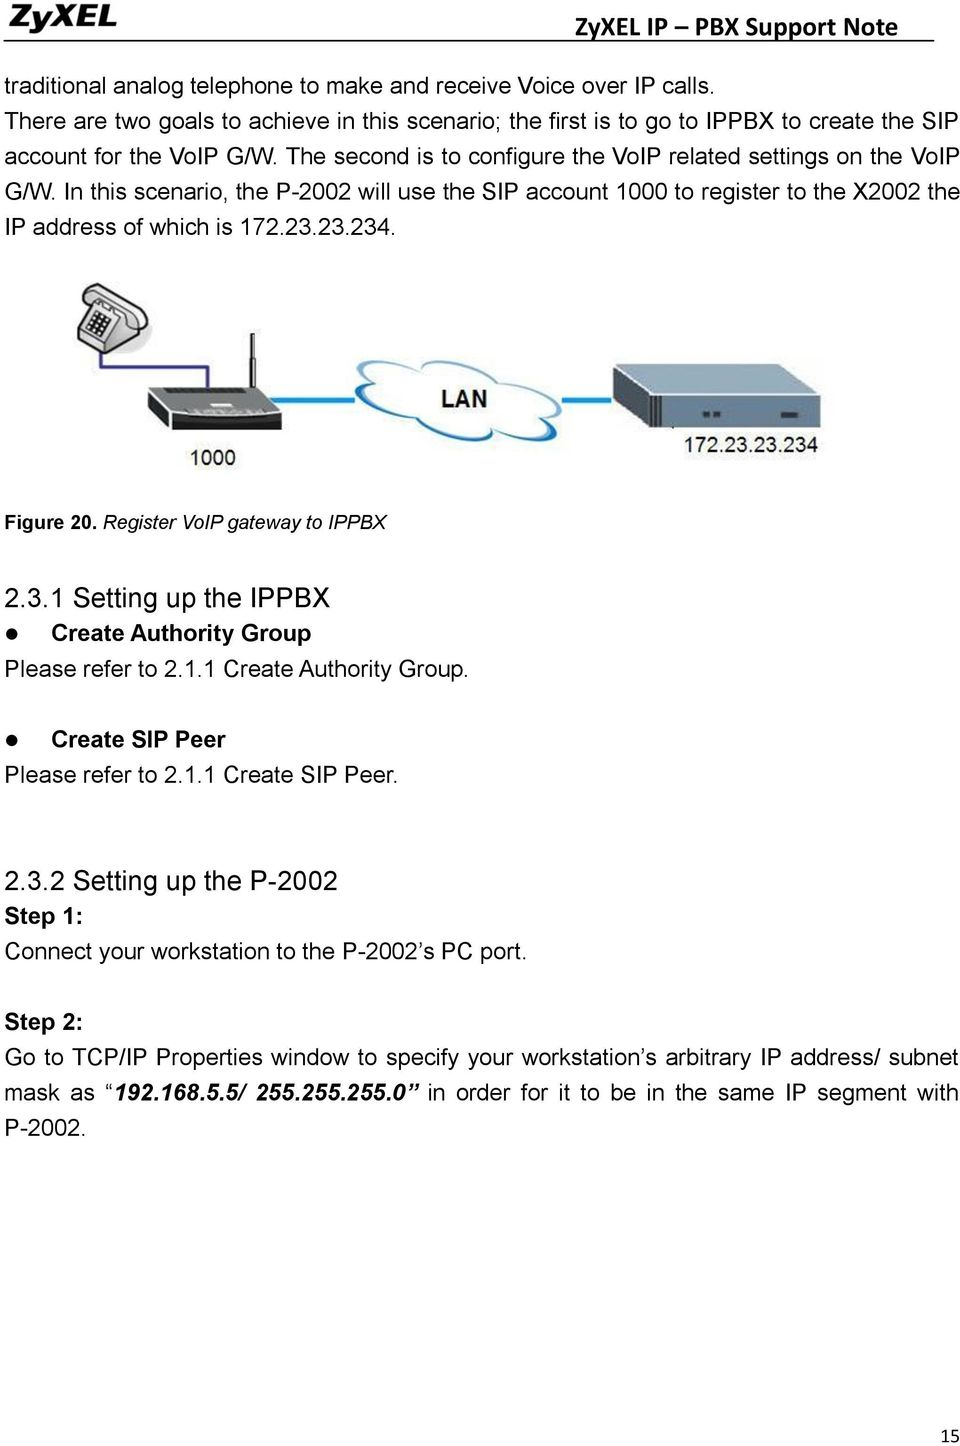 Figure 20. Register VoIP gateway to IPPBX 2.3.1 Setting up the IPPBX Create Authority Group Please refer to 2.1.1 Create Authority Group. Create SIP Peer Please refer to 2.1.1 Create SIP Peer. 2.3.2 Setting up the P-2002 Step 1: Connect your workstation to the P-2002 s PC port.